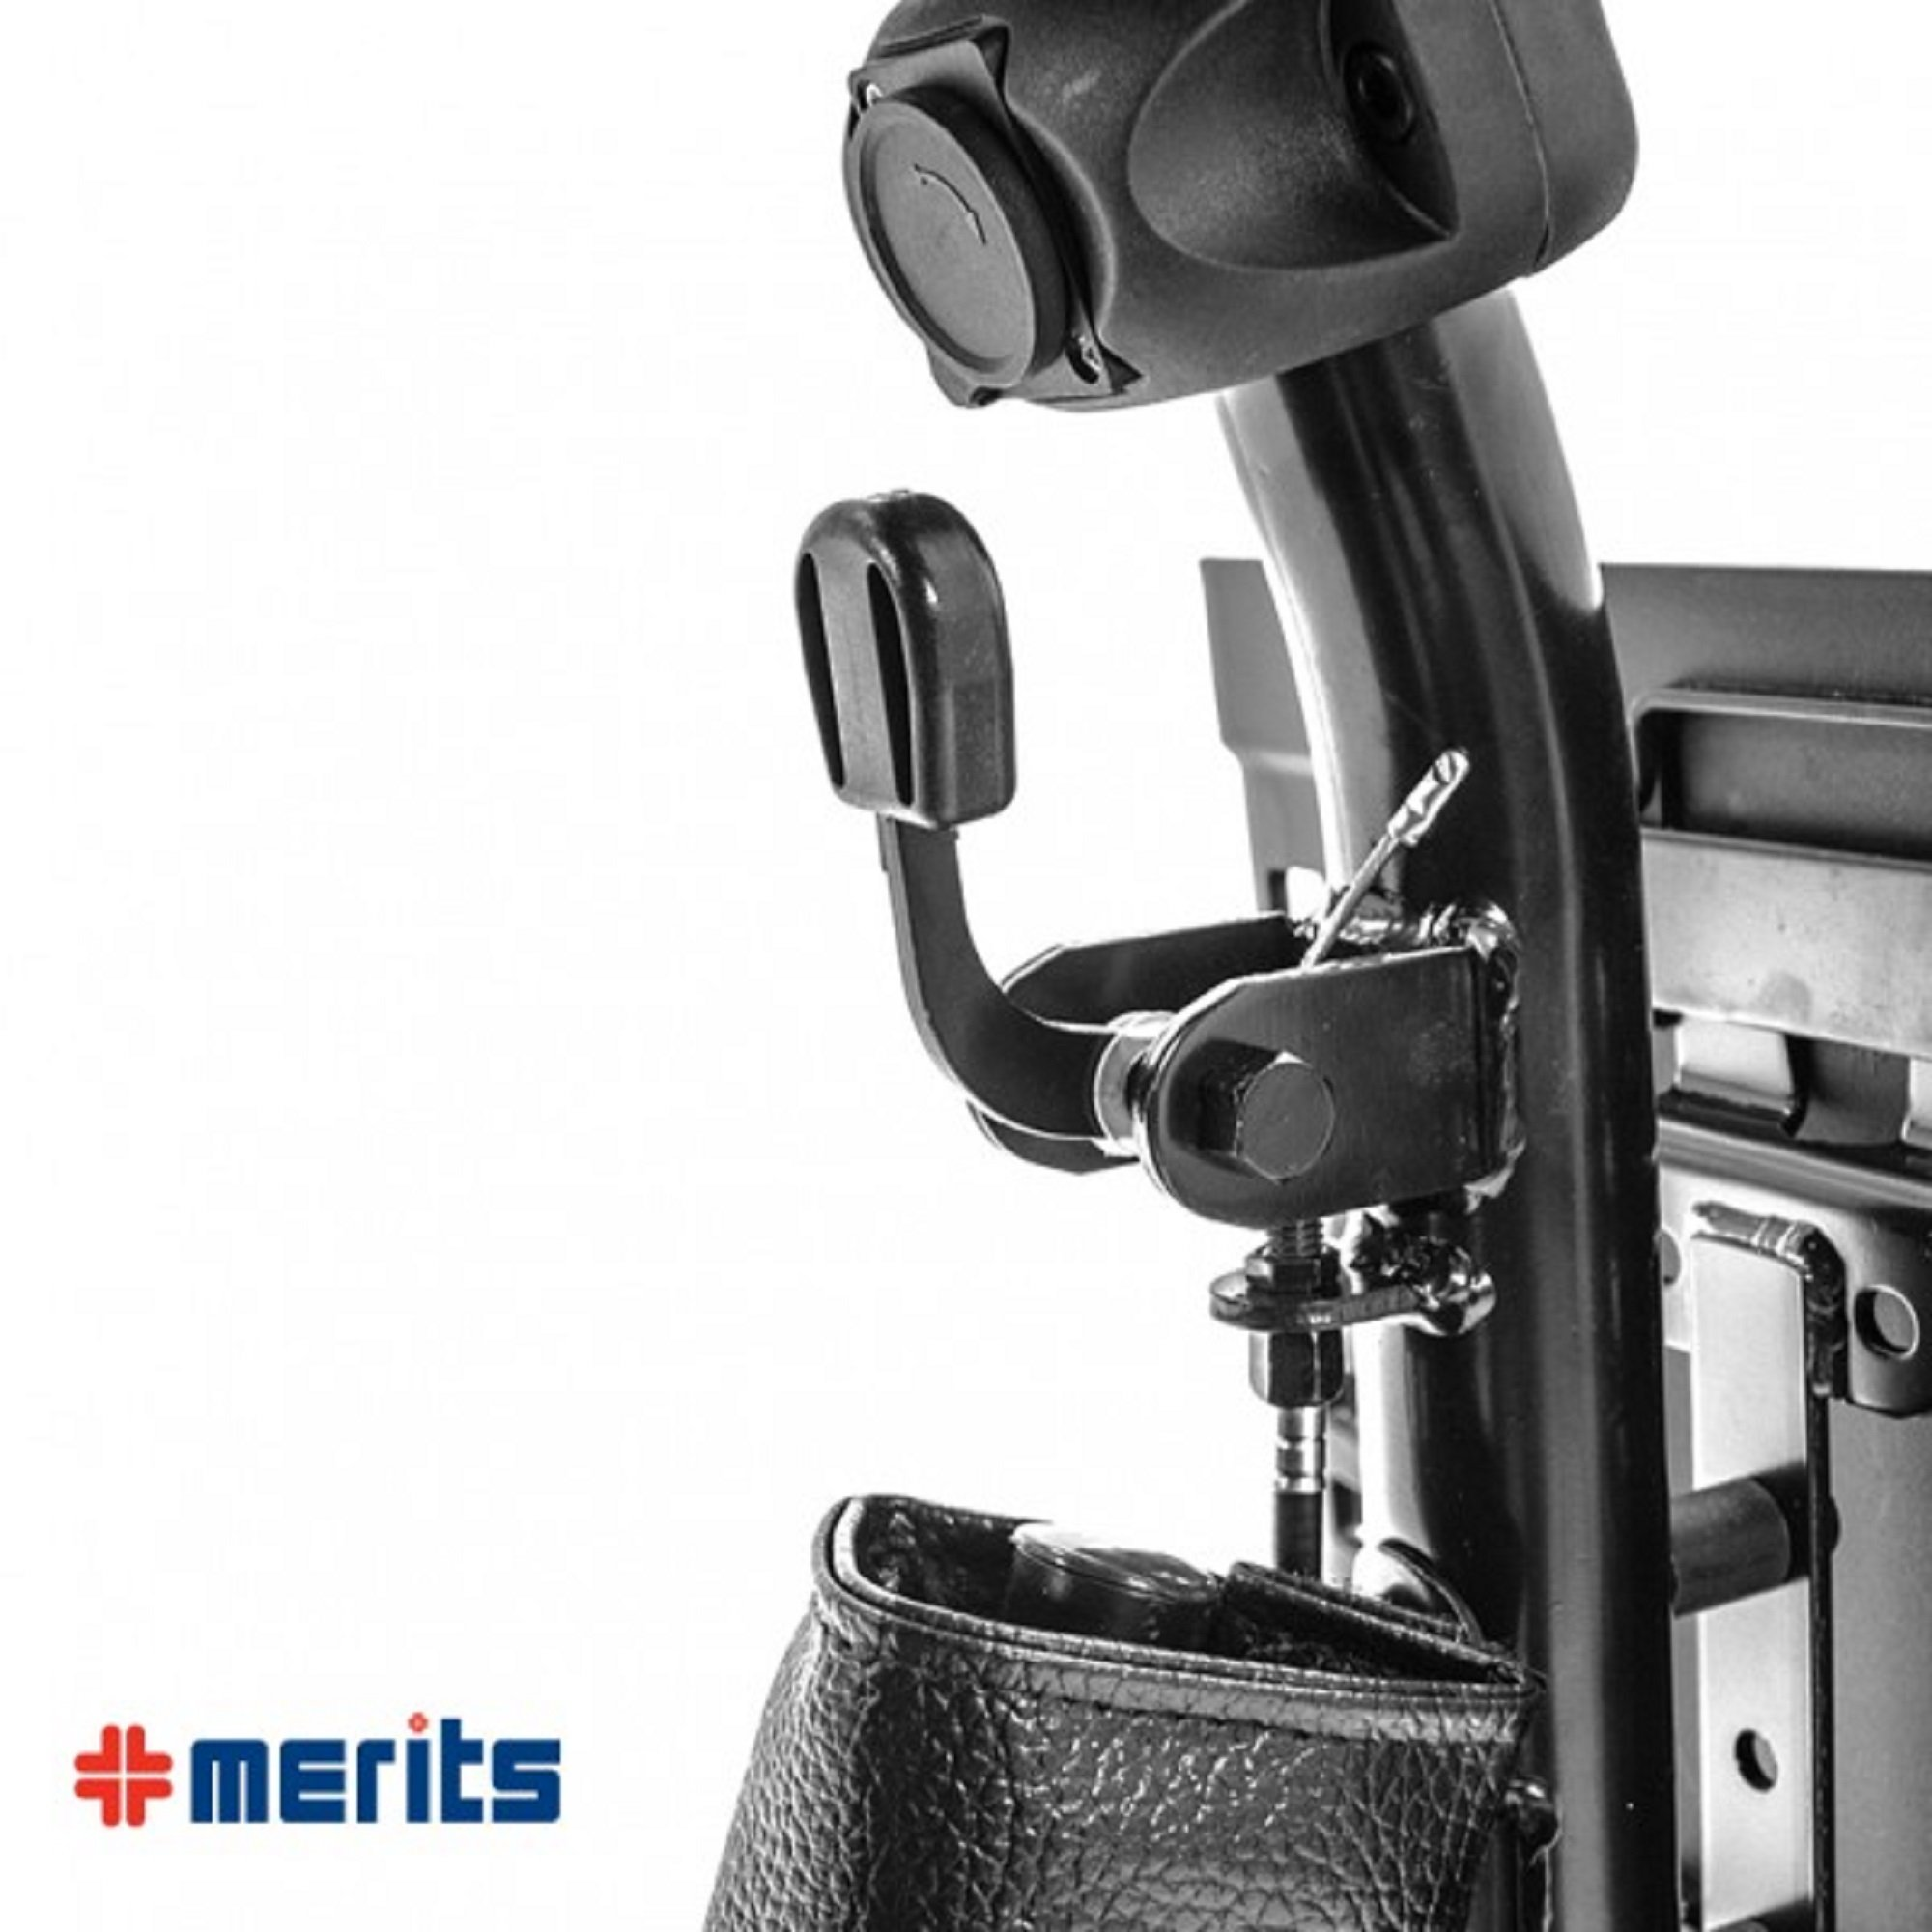 Merits Health Products - Roadster Deluxe - 3-Wheel Scooter - 18''W x 15''D - Red - PHILLIPS POWER PACKAGE TM - TO $500 VALUE by ROADSTER (Image #4)